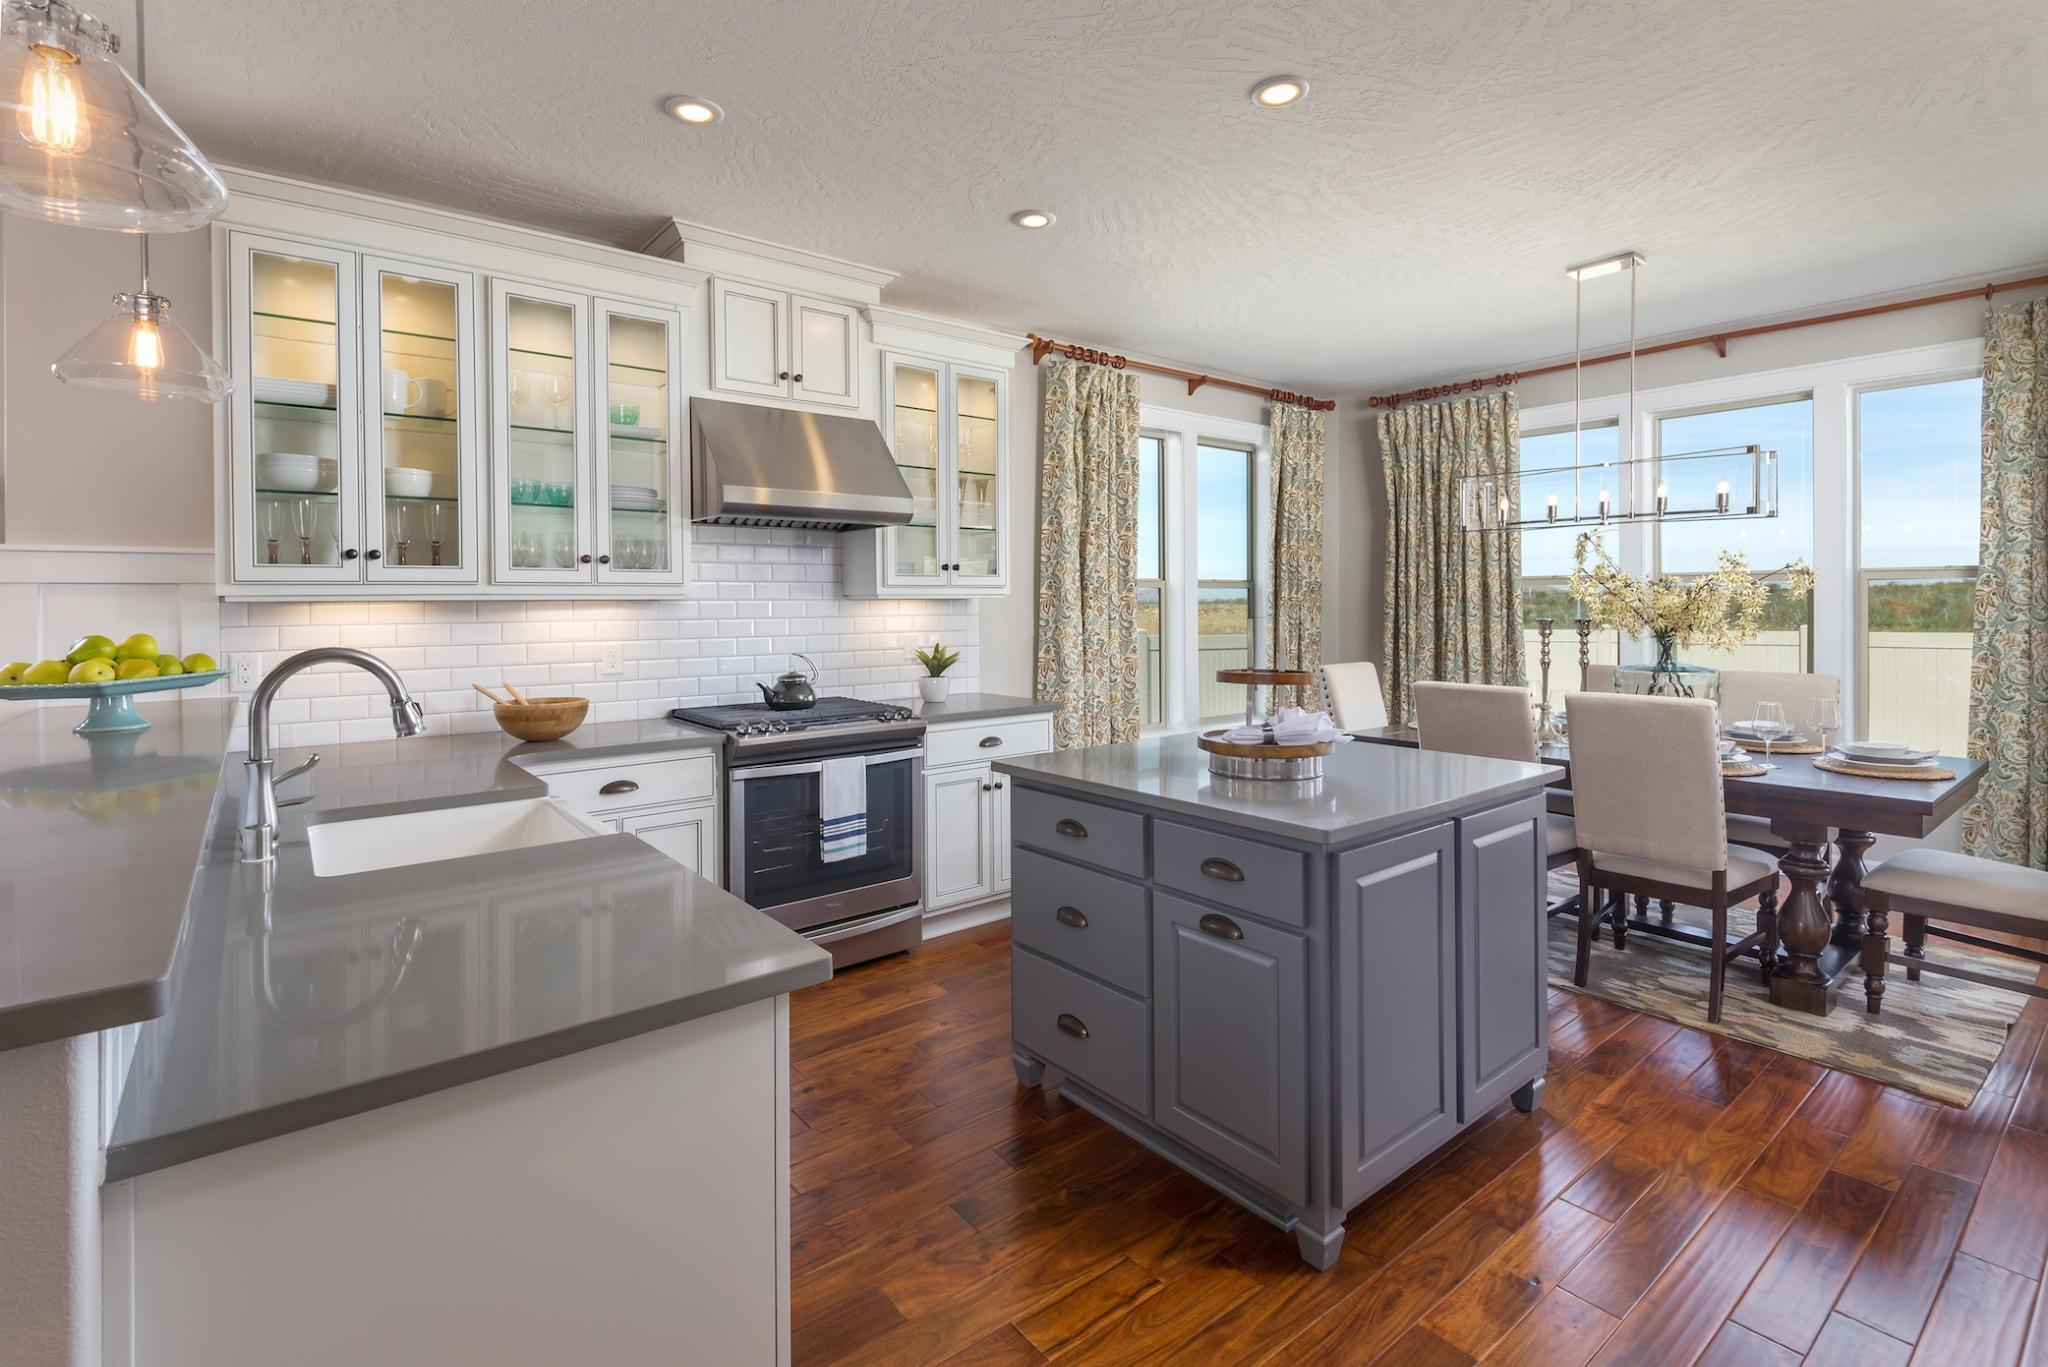 Kitchen featured in the Ashford By New Tradition Homes in Richland, WA